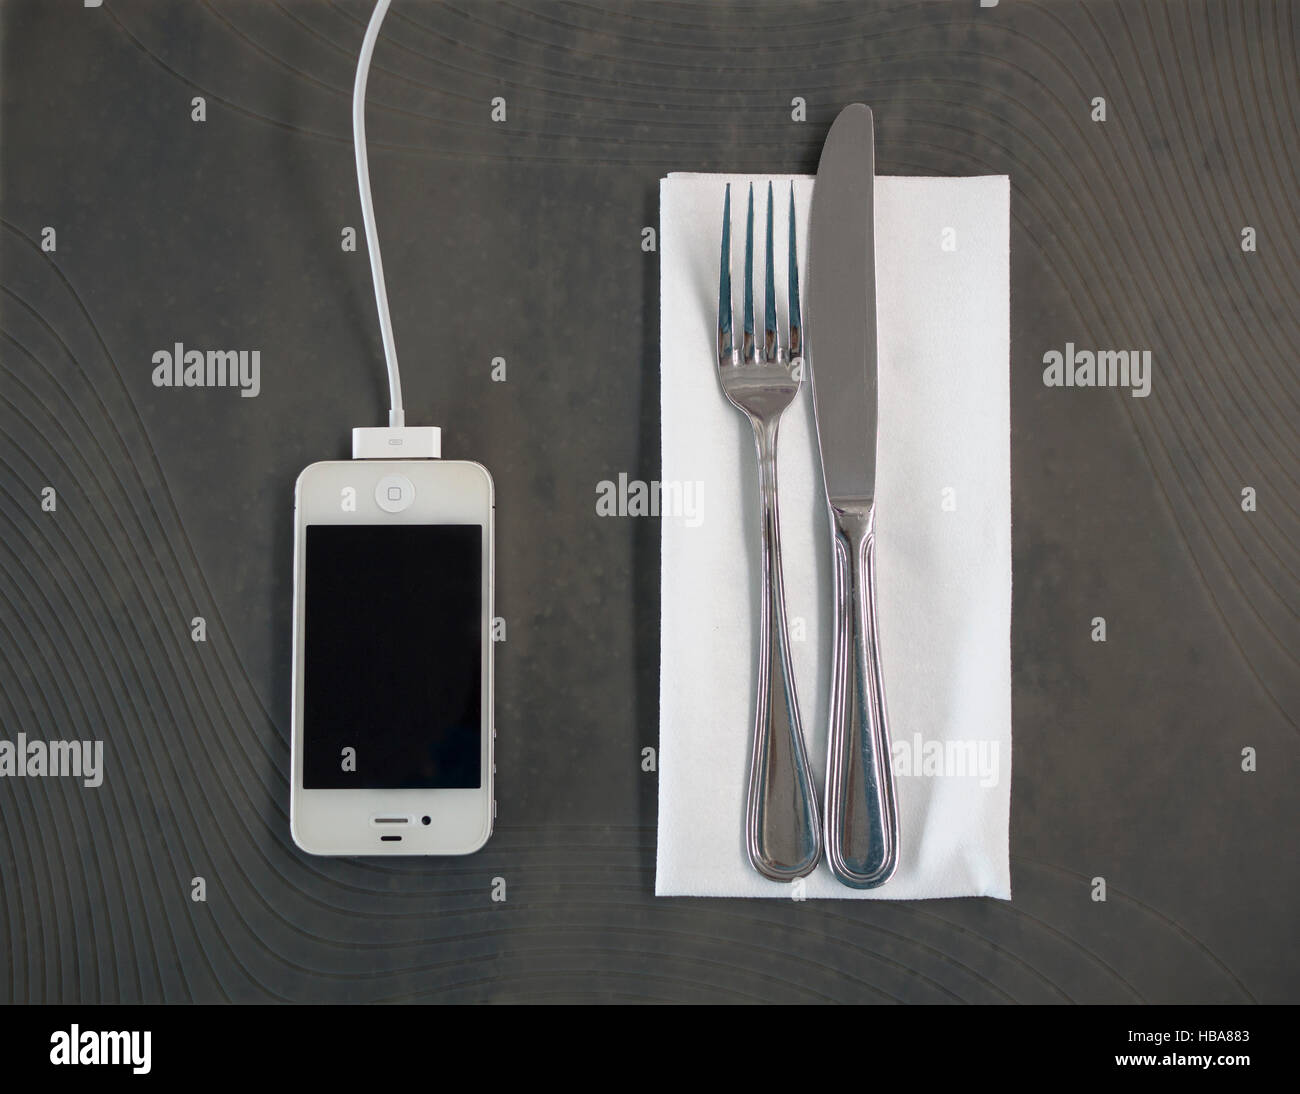 iPhone charging on table with cutlery at airport restaurant - Stock Image